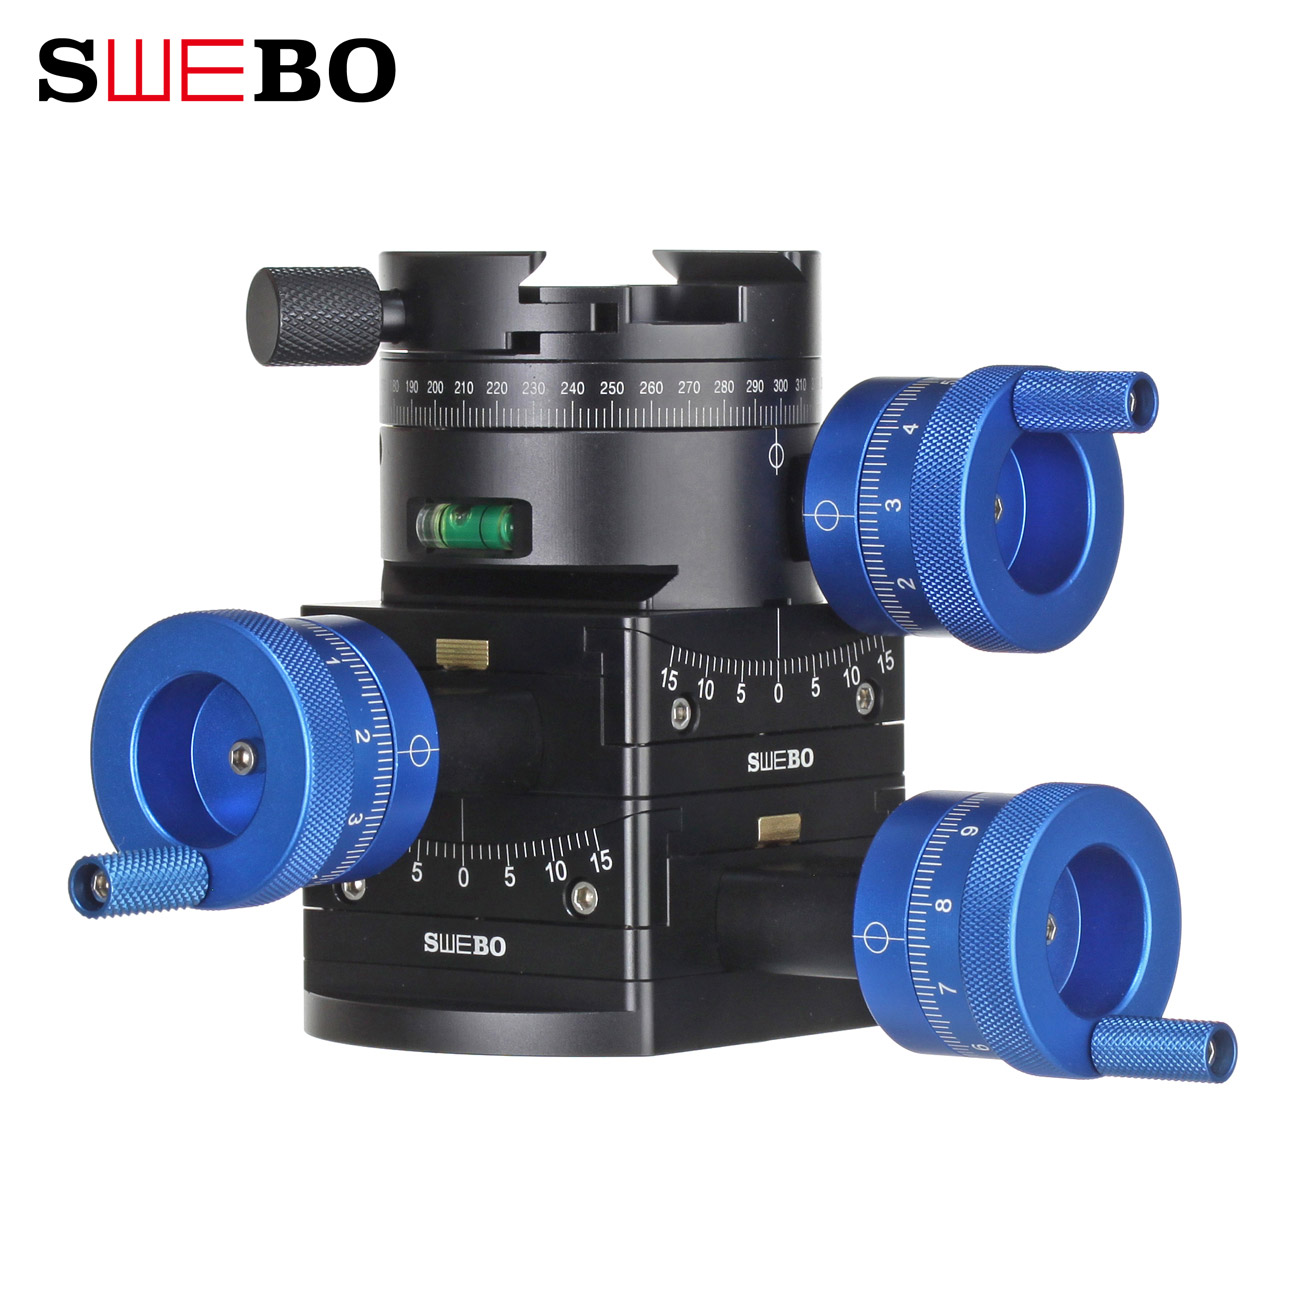 Swebo new dimension nd116 gear omnidirectional fine tuning PTZ star panoramic delay photography video shooting